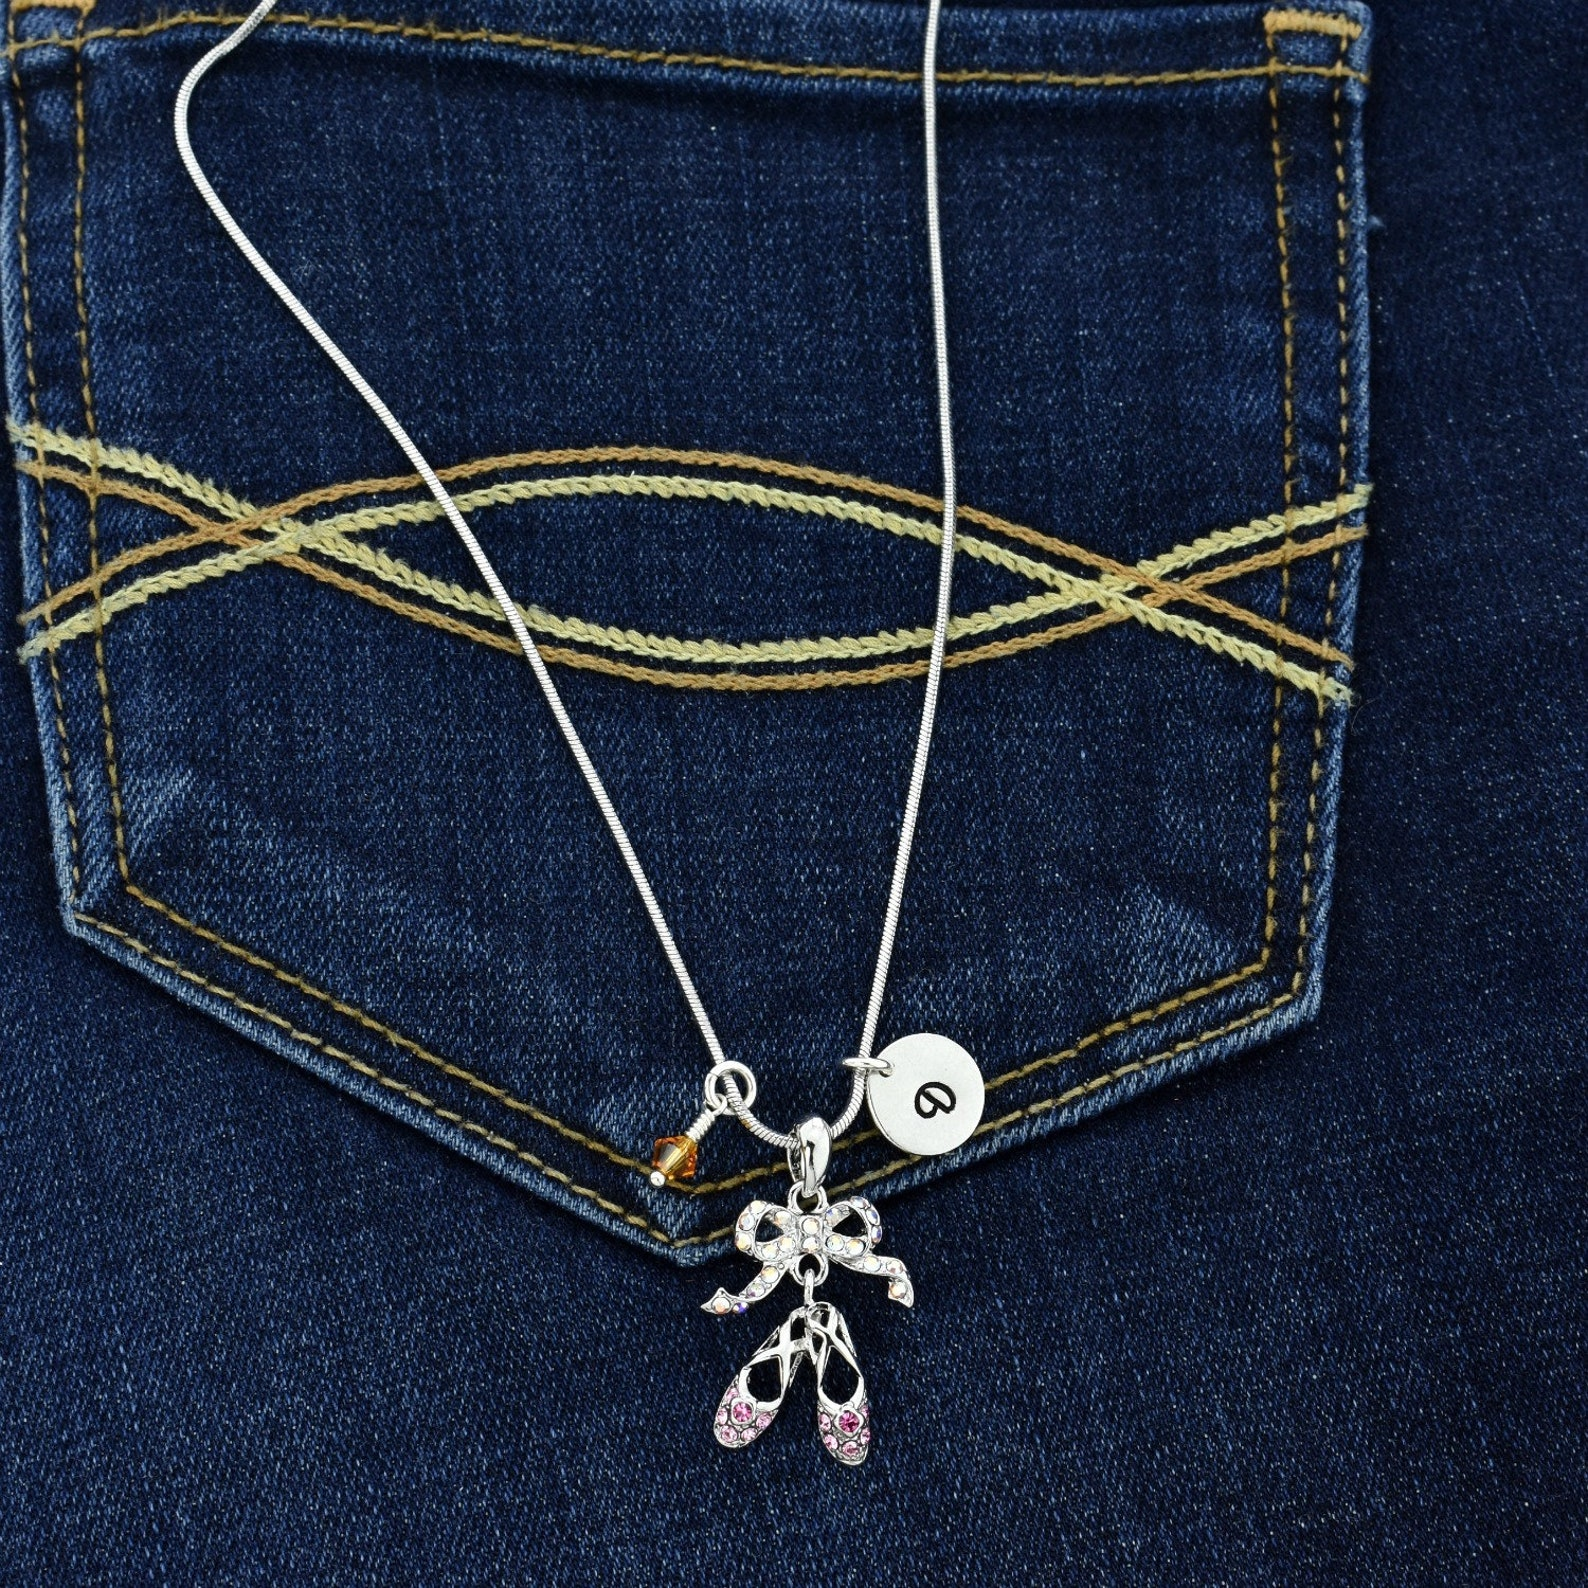 swarovski crystal ballet shoes custom necklace pink pendant personalized hand stamped initial letter and birthstone charm chain